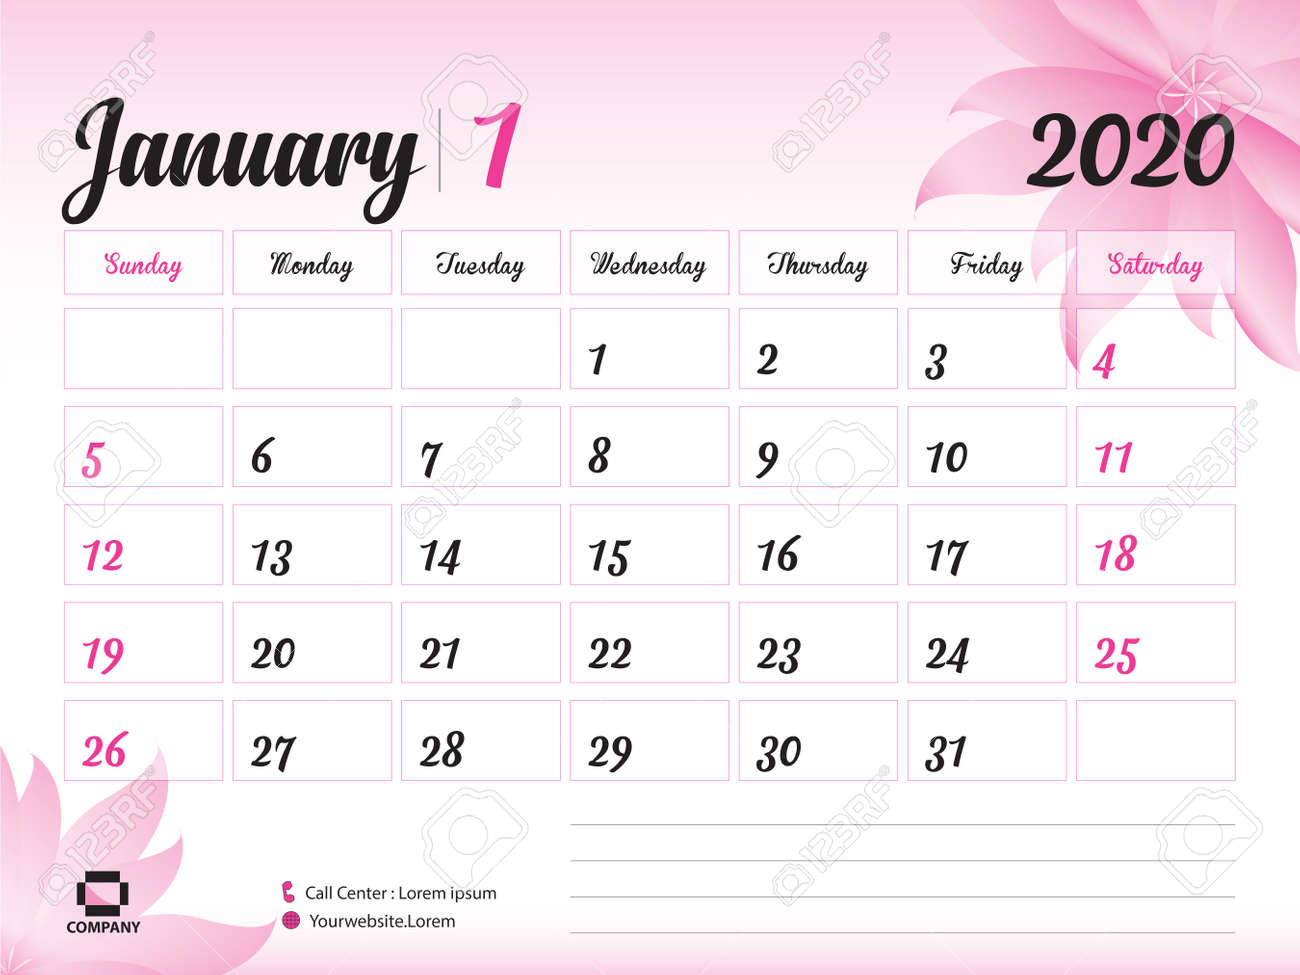 photo about Printable Calendar 2020 named January 2020 Calendar year Template, Calendar 2020, Table Calendar Structure,..